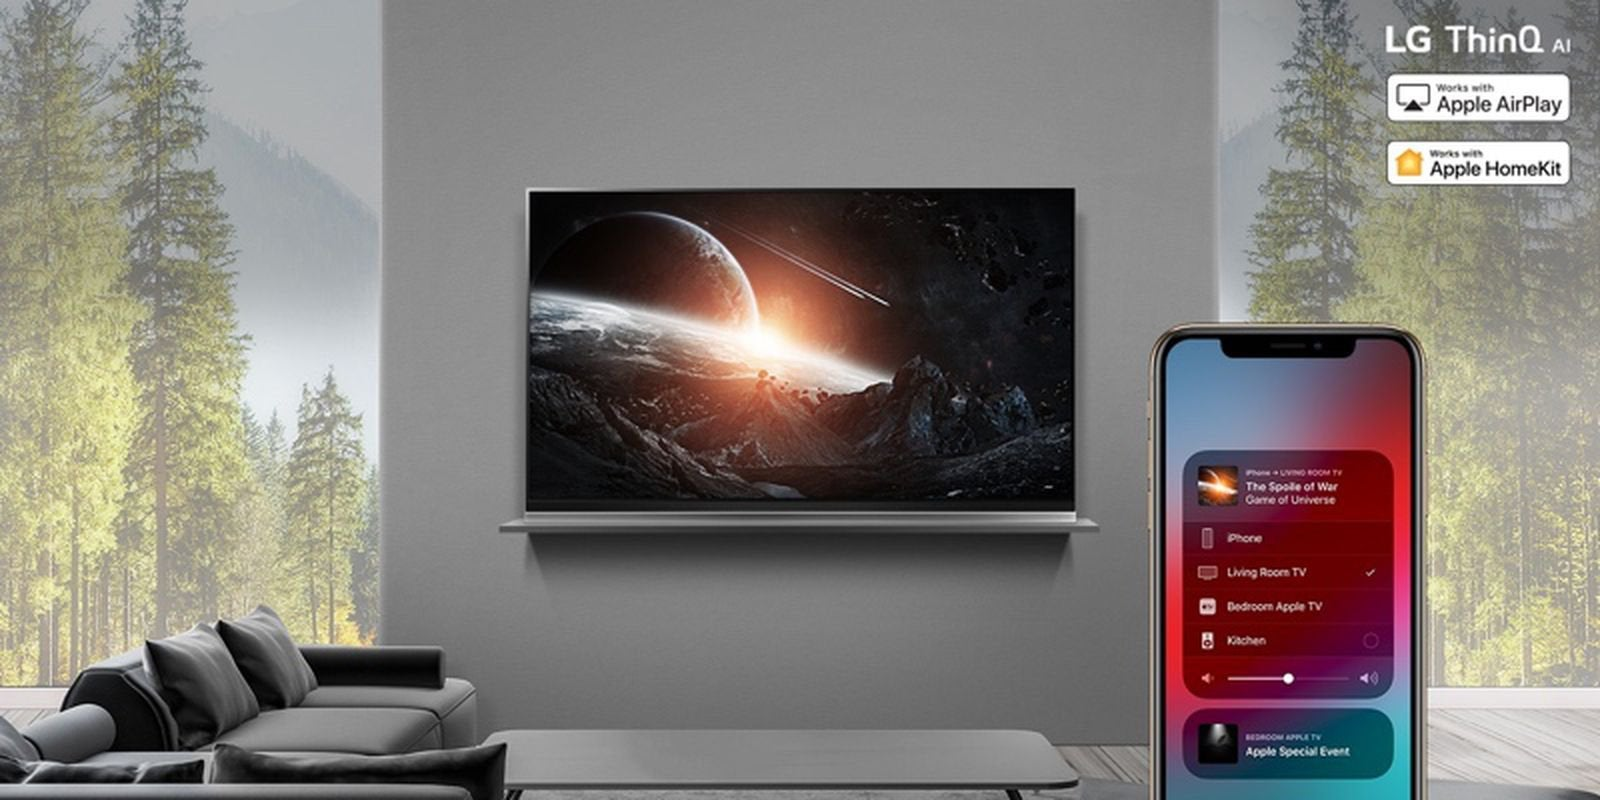 No HomeKit AirPlay support for LG 2018 🖕🏻LG